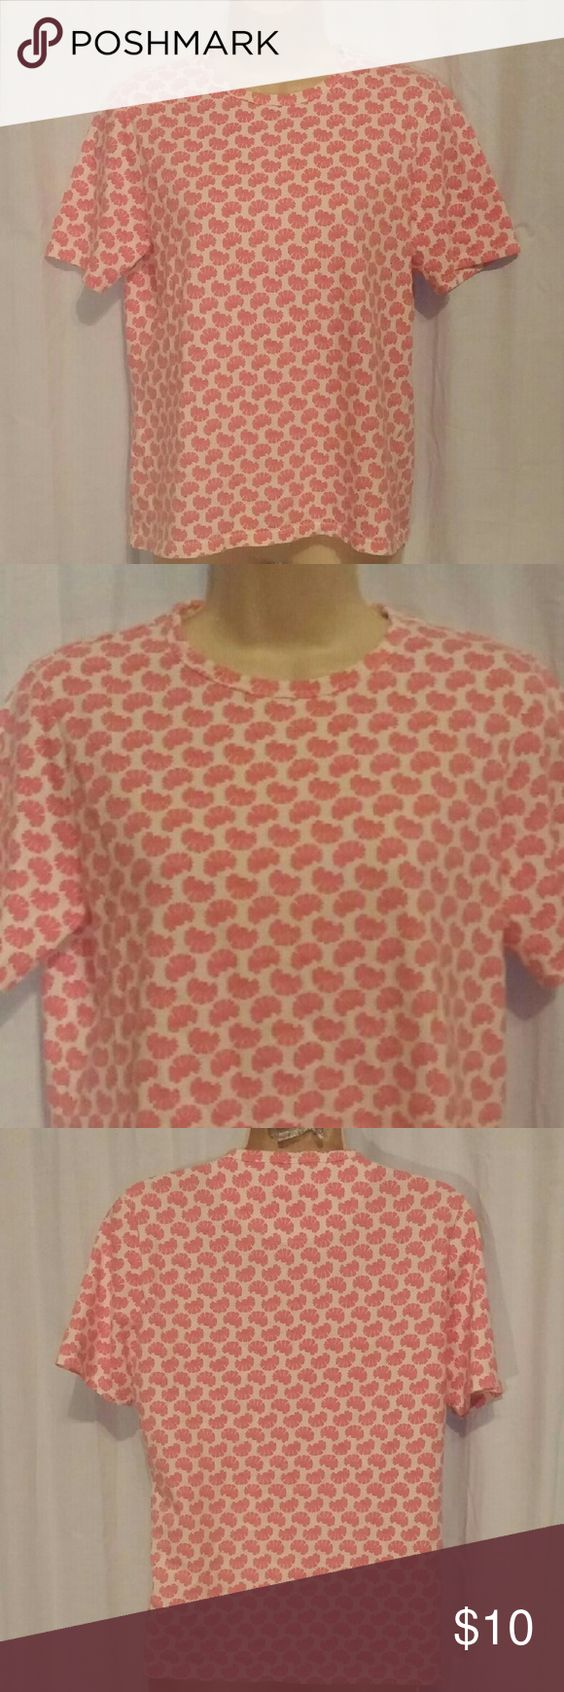 "Lands' End Pink White Short Sleeve T Shirt Top M All clothes are in excellent used condition. No stains or holes.  Content: 100% cotton  Bust: 38"" Length: 24""  Posh8 Lands' End Tops Tees - Short Sleeve"